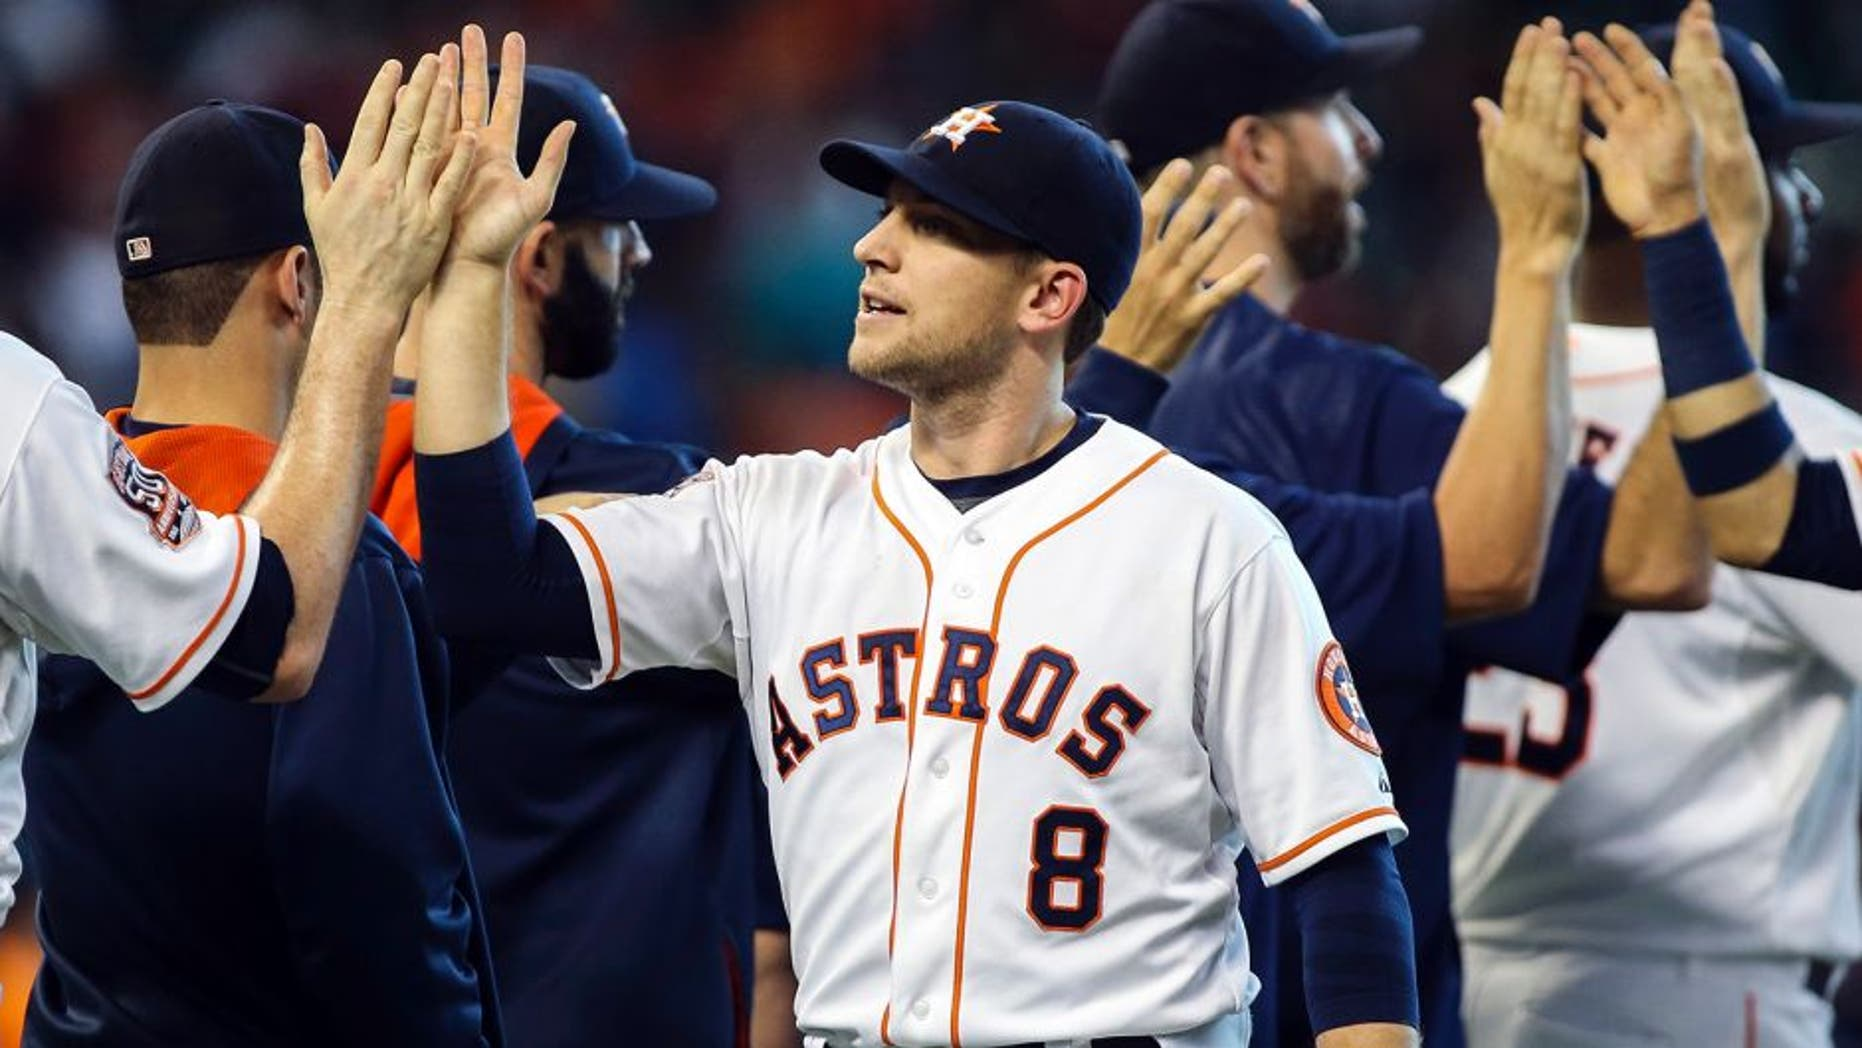 Sep 6, 2015; Houston, TX, USA; Houston Astros third baseman Jed Lowrie (8) celebrates with teammates after the Astros defeated the Minnesota Twins 8-5 at Minute Maid Park. Mandatory Credit: Troy Taormina-USA TODAY Sports